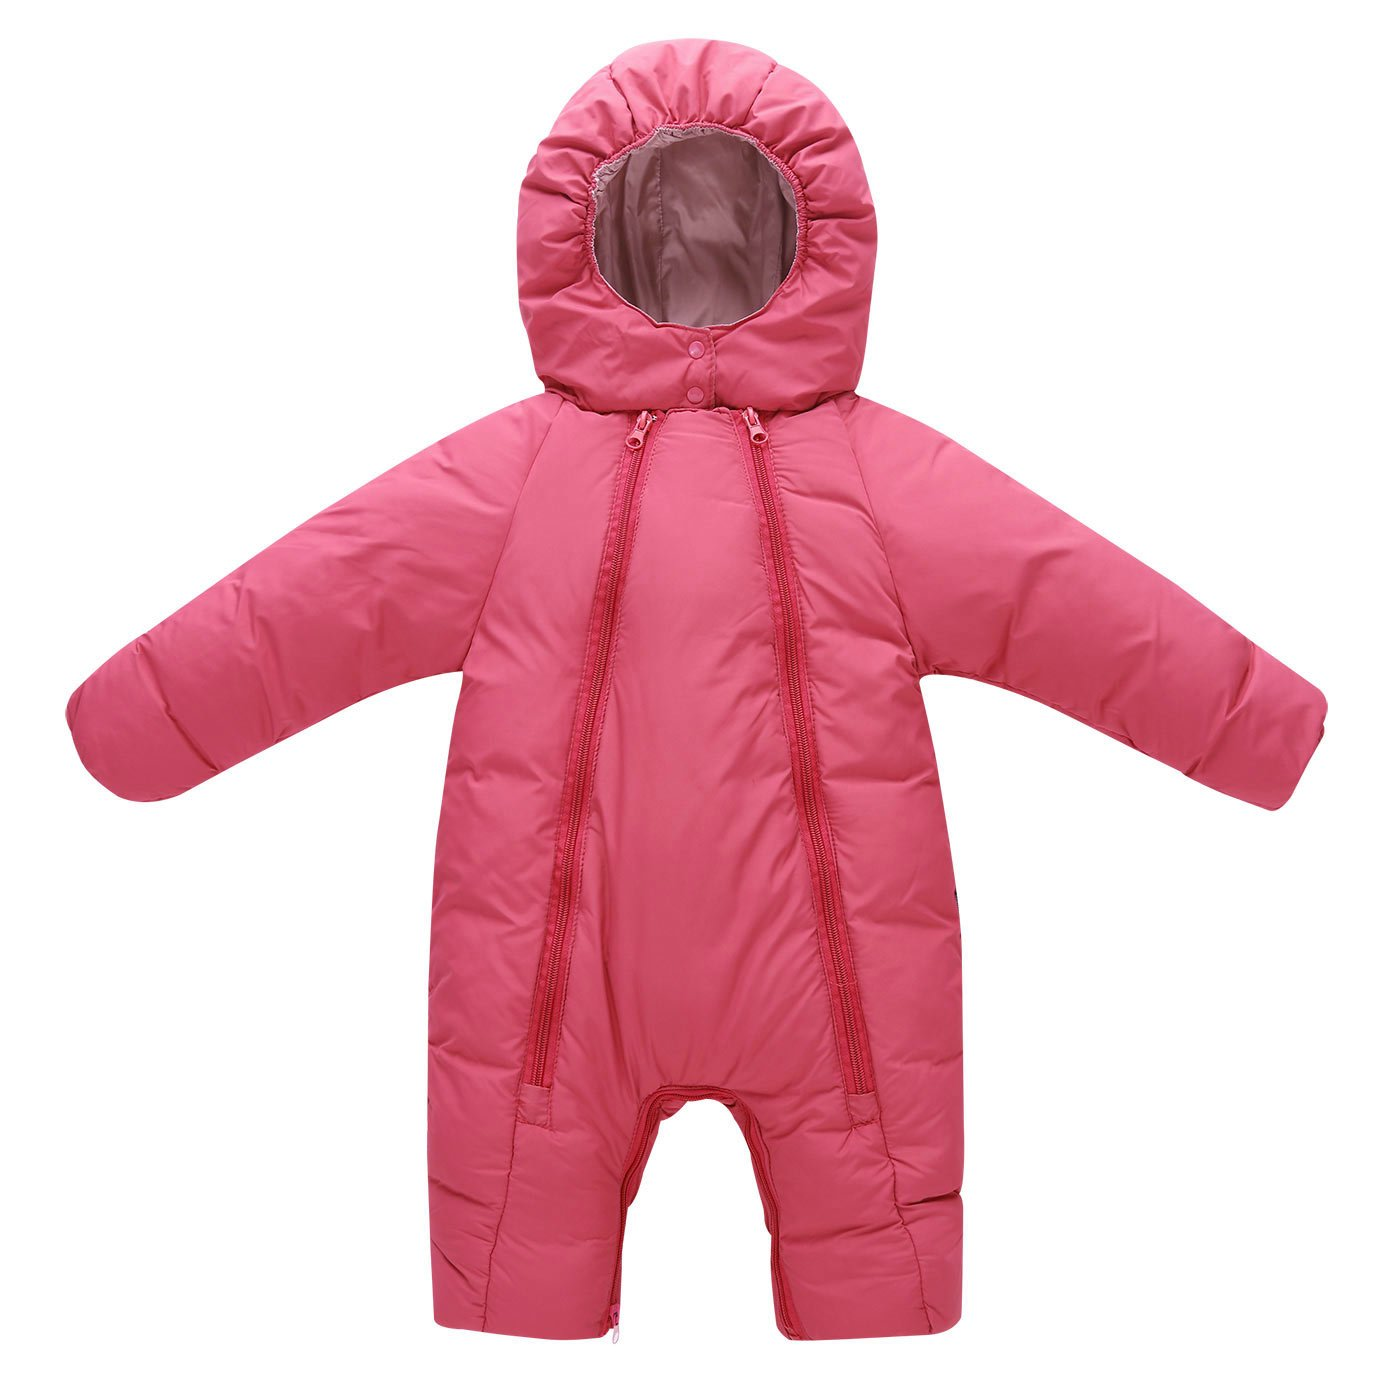 Ohrwurm Baby Winter Puffer One Piece Snowsuit with Hood Zipped Toddler Padded Sleepsuit